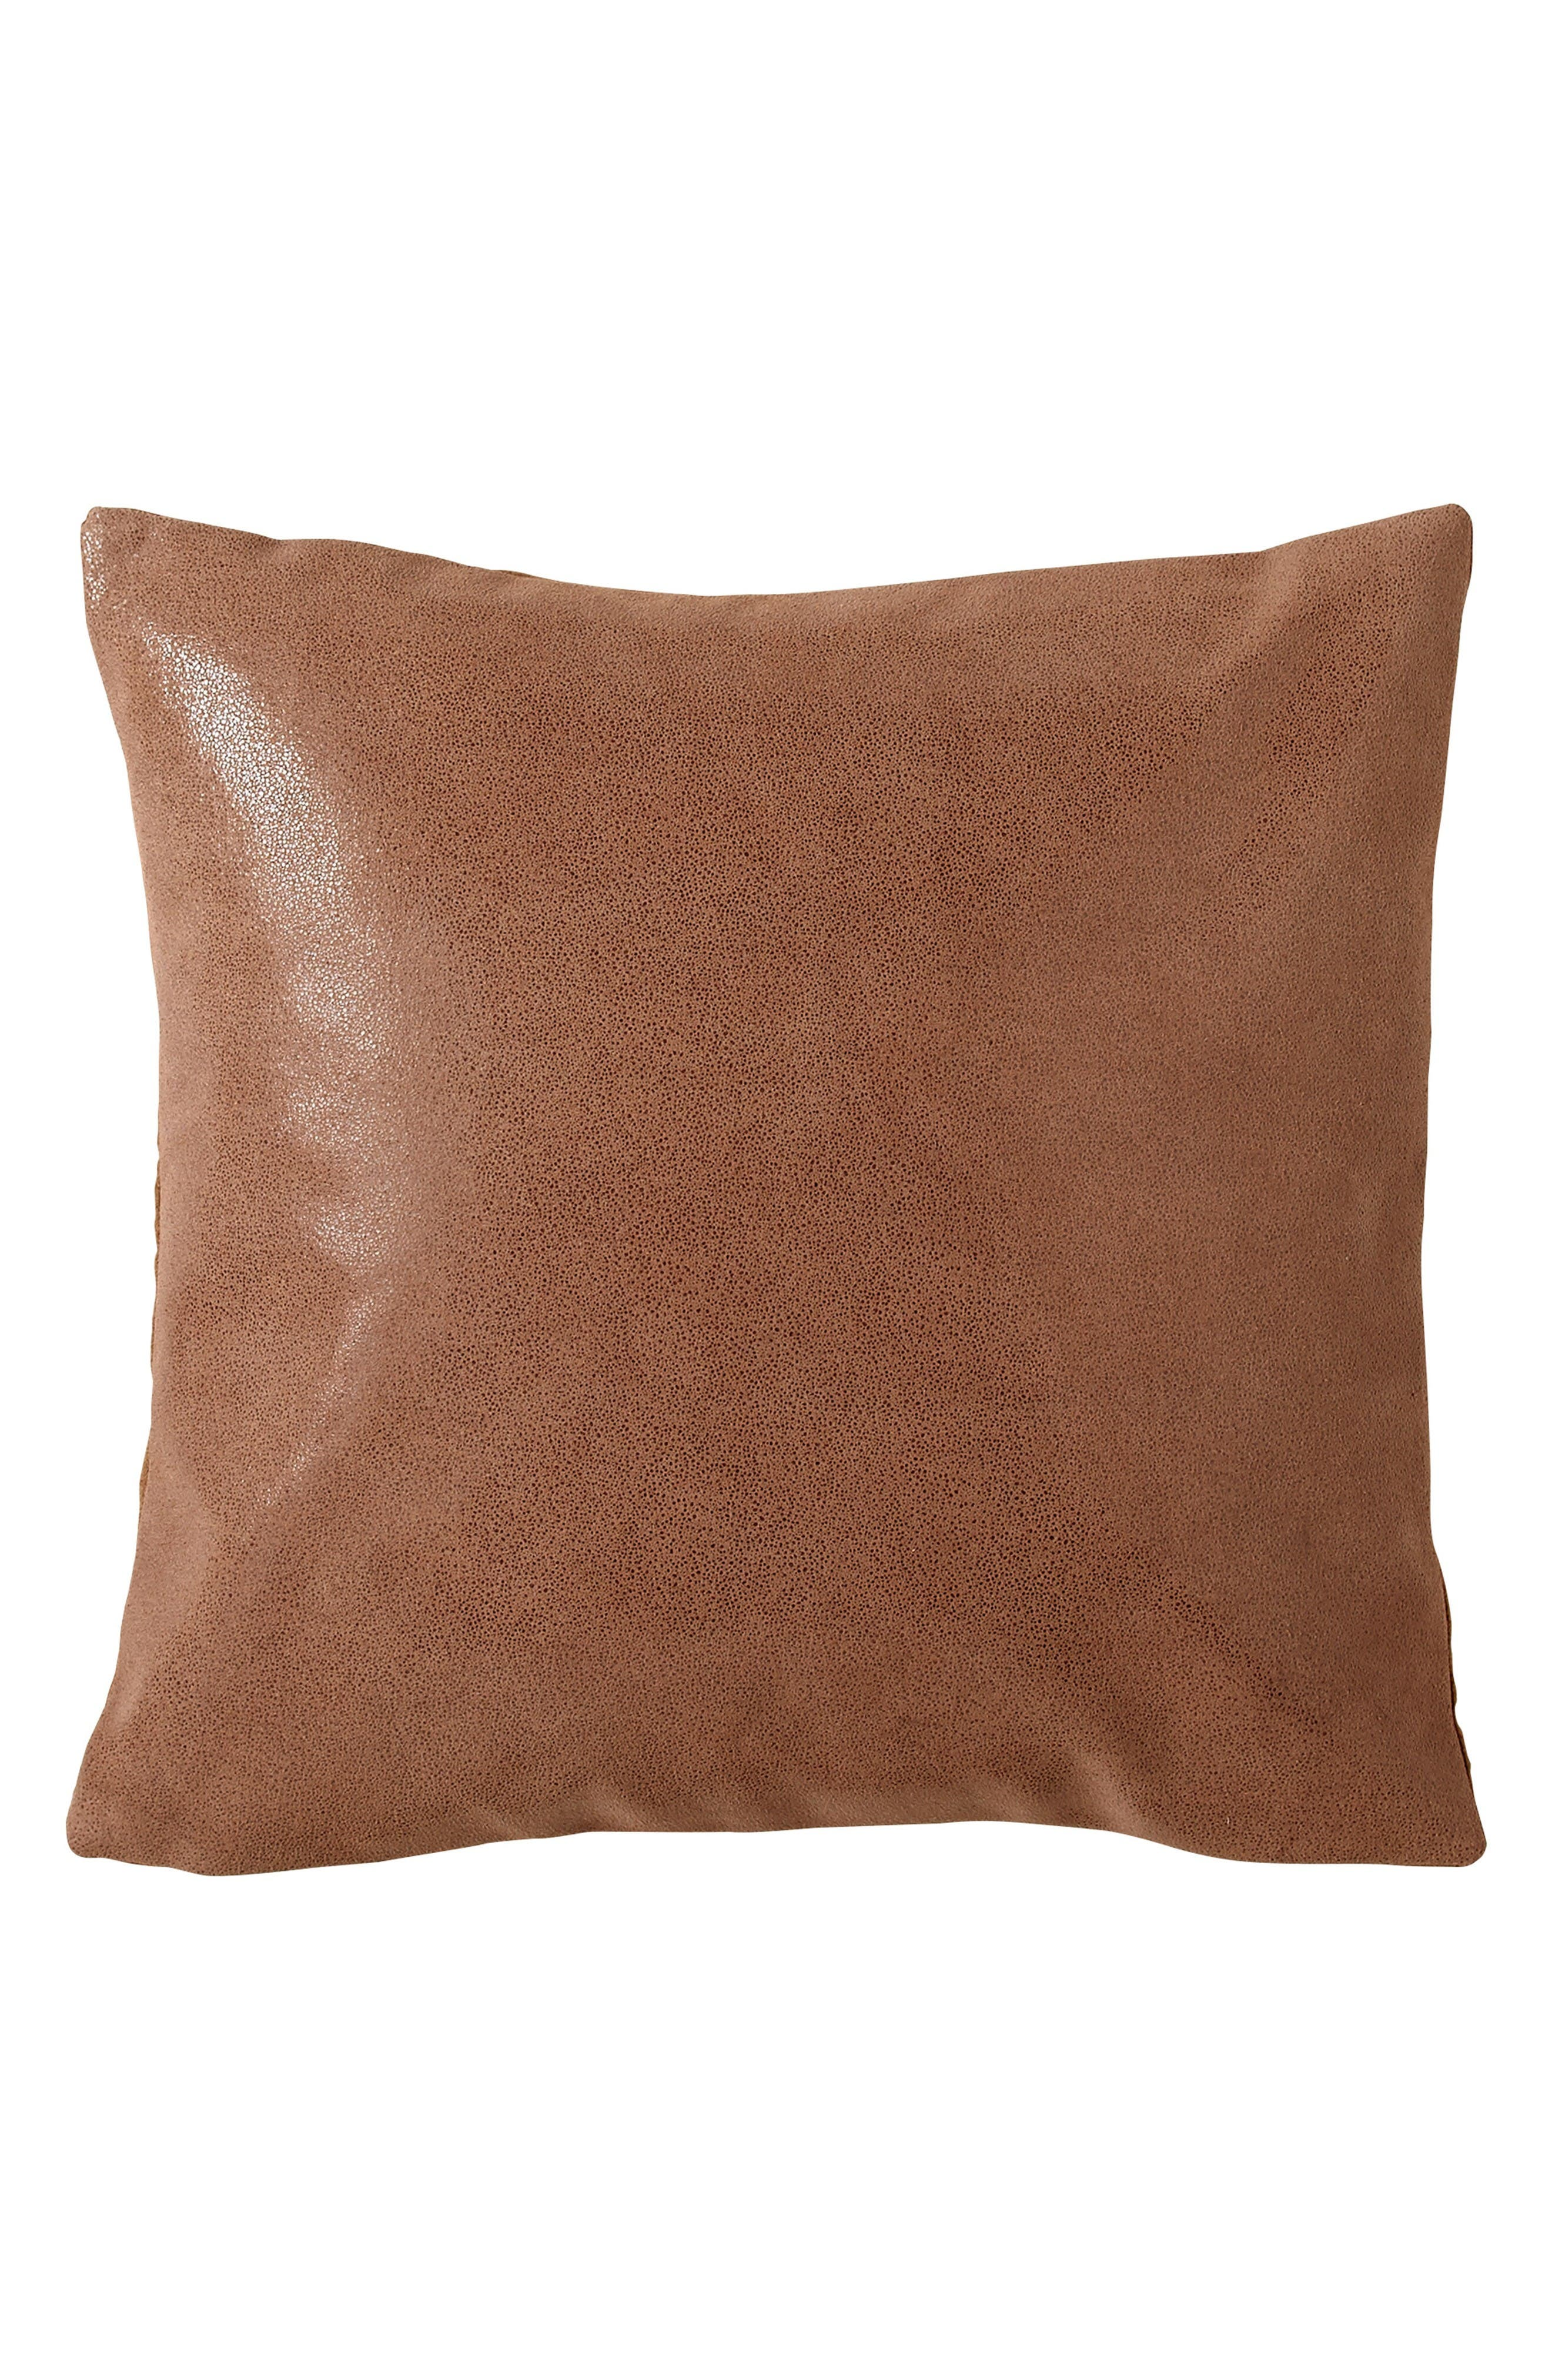 Alternate Image 1 Selected - Donna Karan Home Collection Awakening Lacquer Printed Leather Accent Pillow